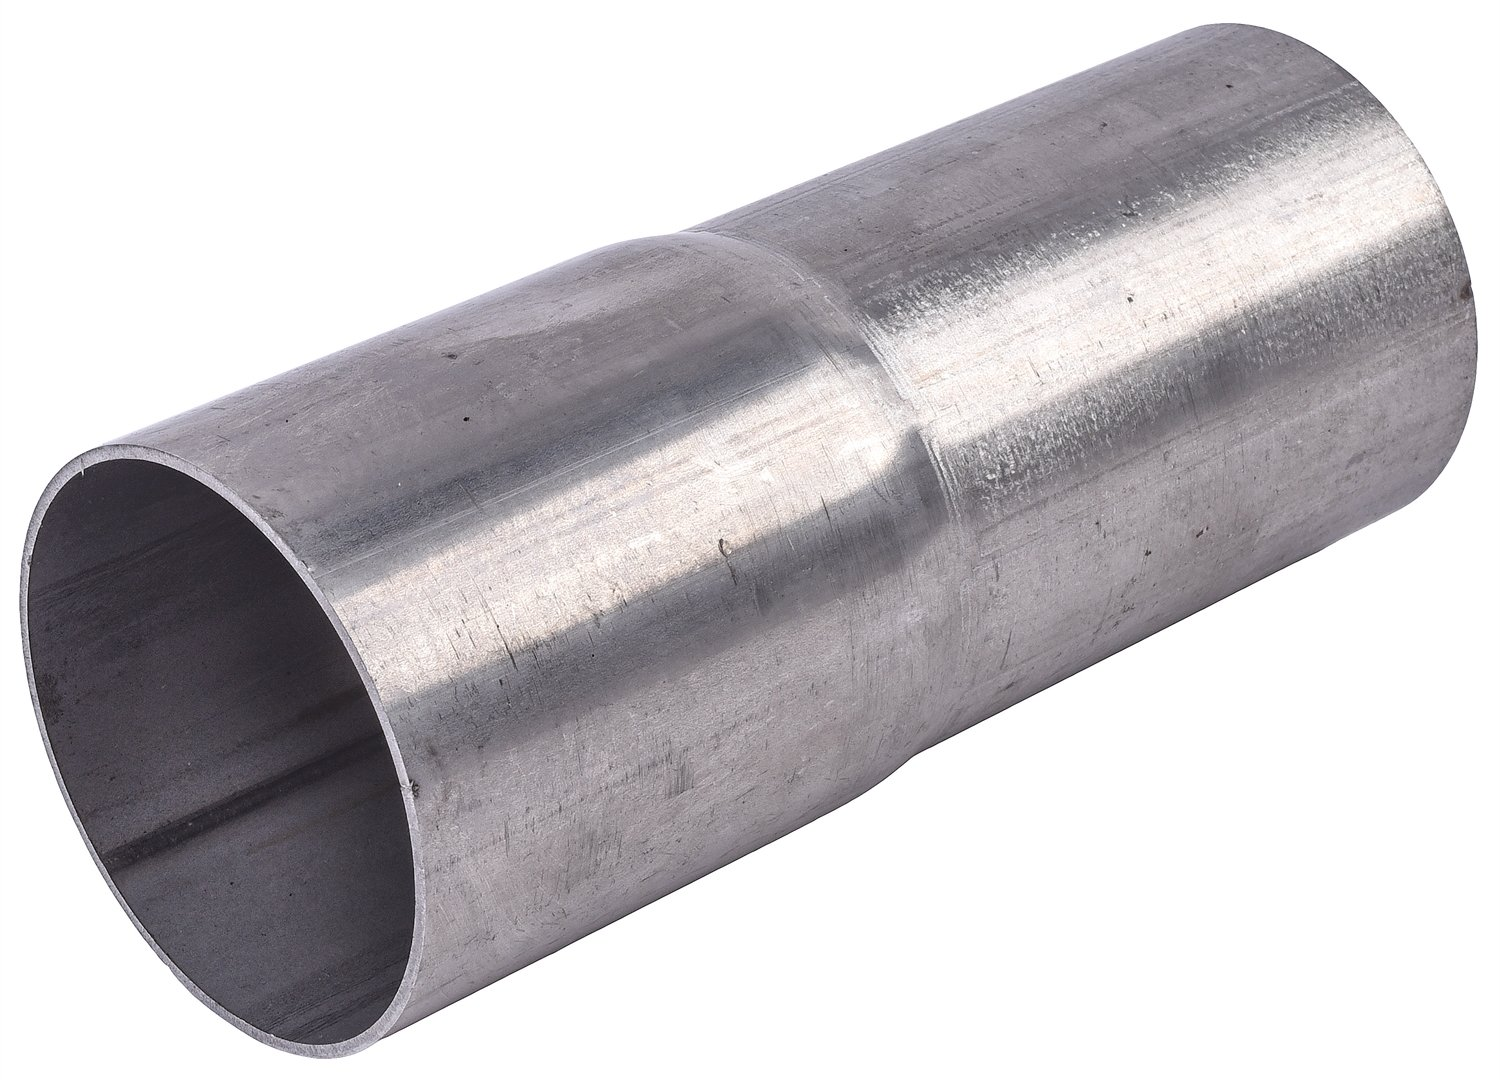 jegs 31981 slip on exhaust pipe adapter 2 1 4 in to 2 1 2 in stainless steel walmart com